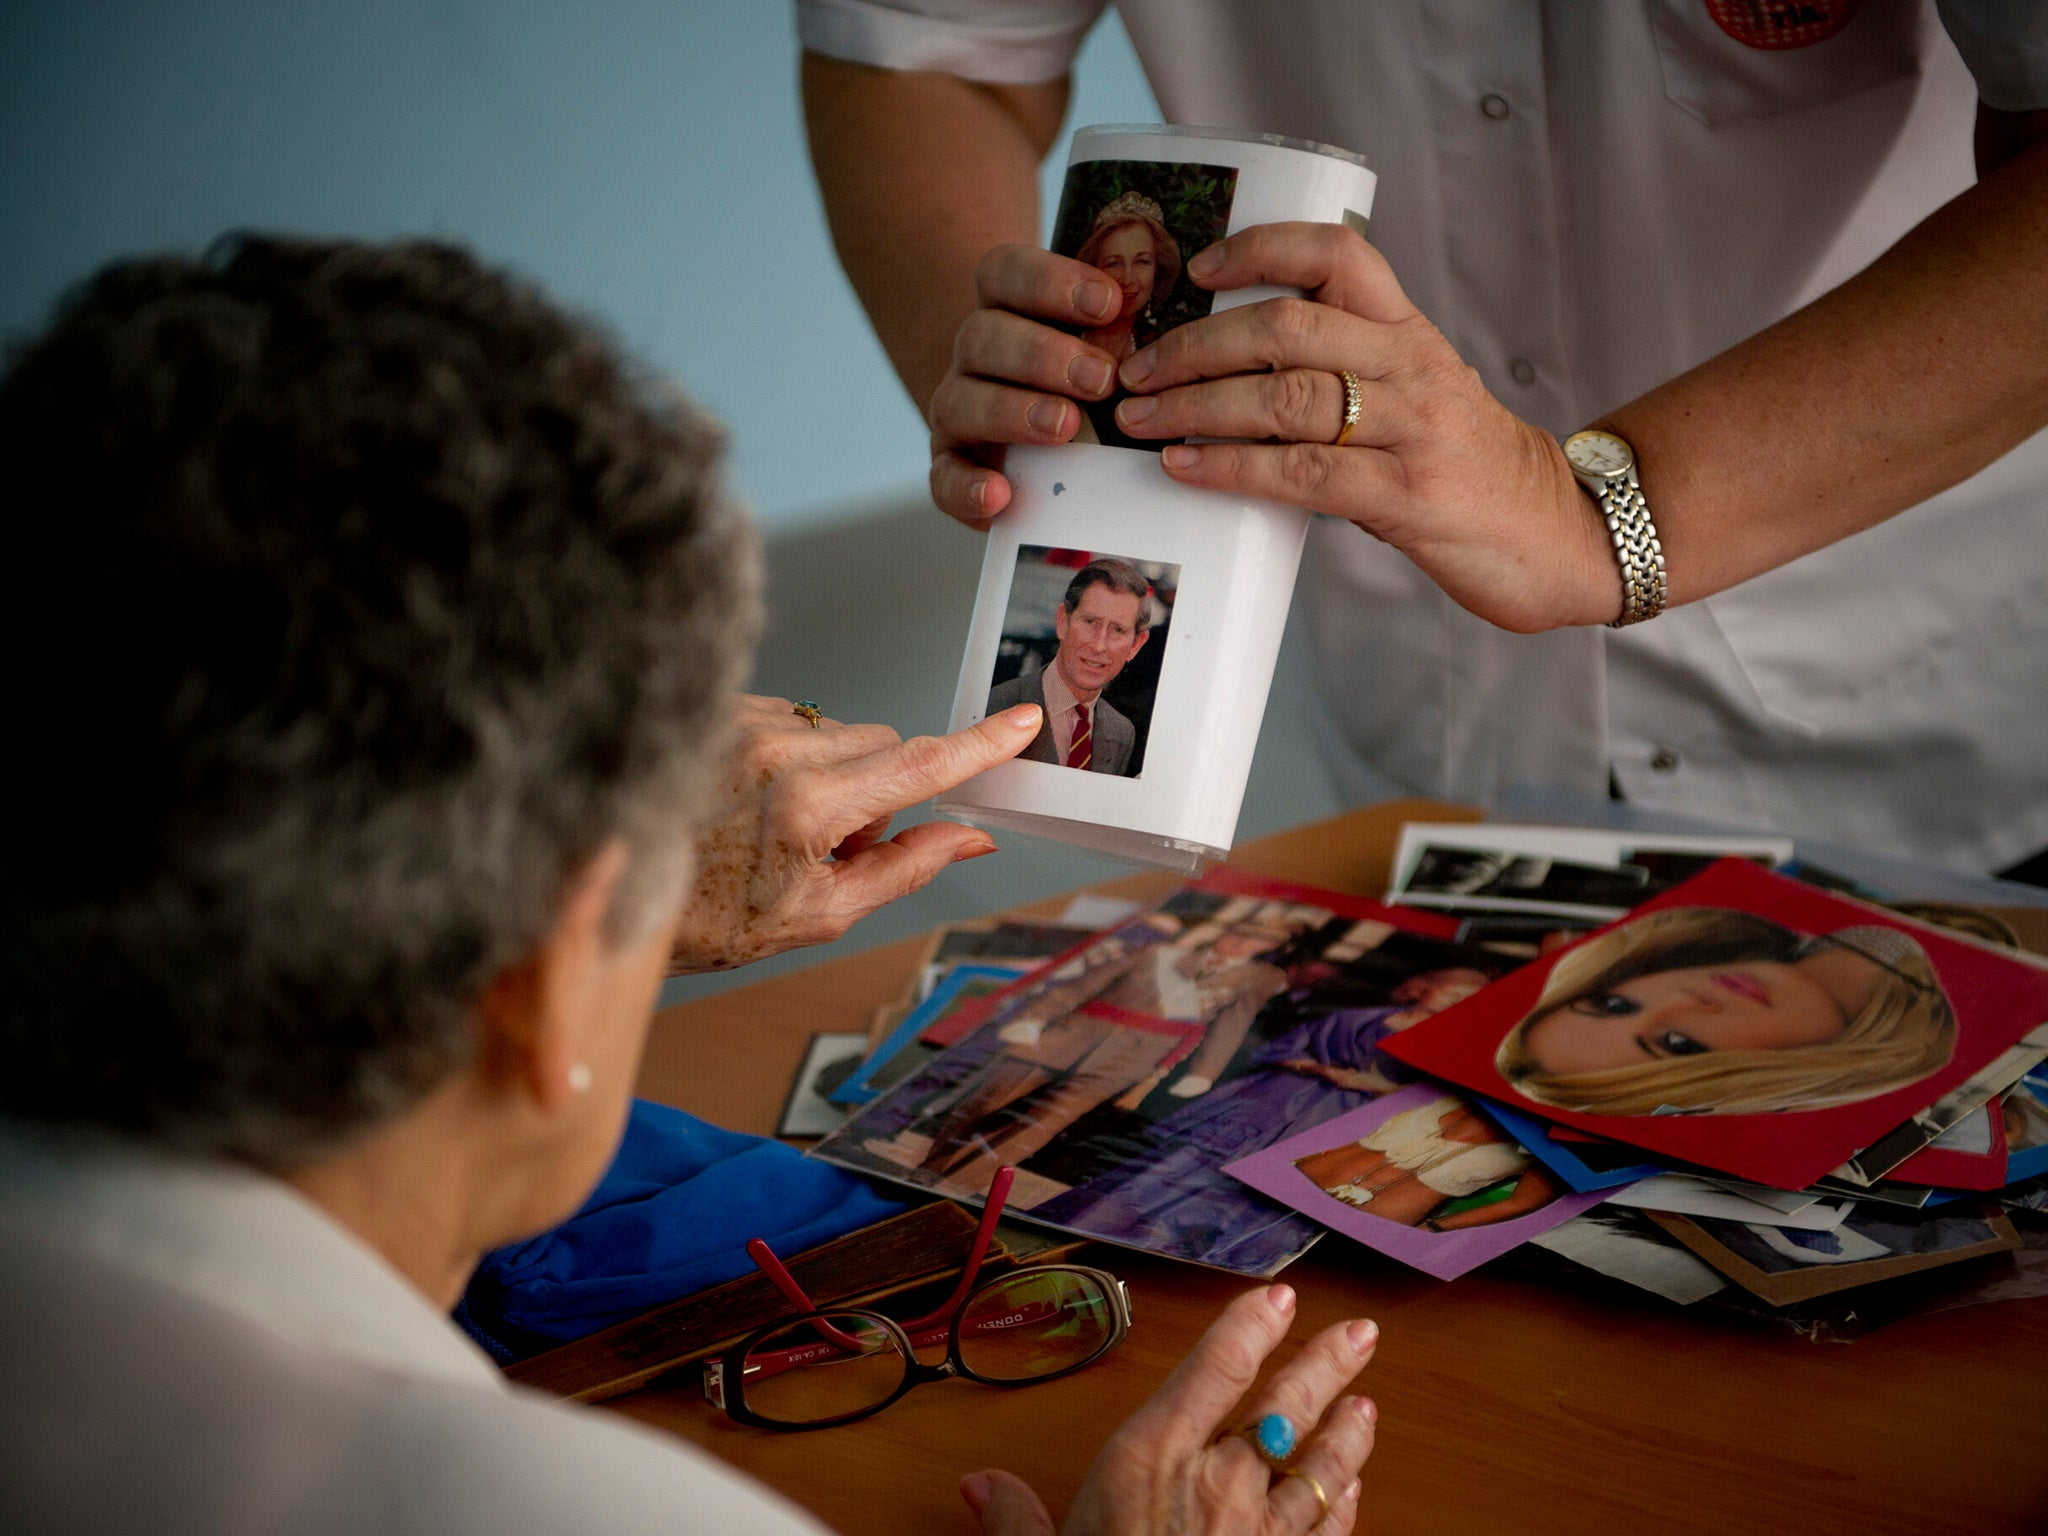 Alzheimer's can be transmitted from one person to another, new evidence suggests